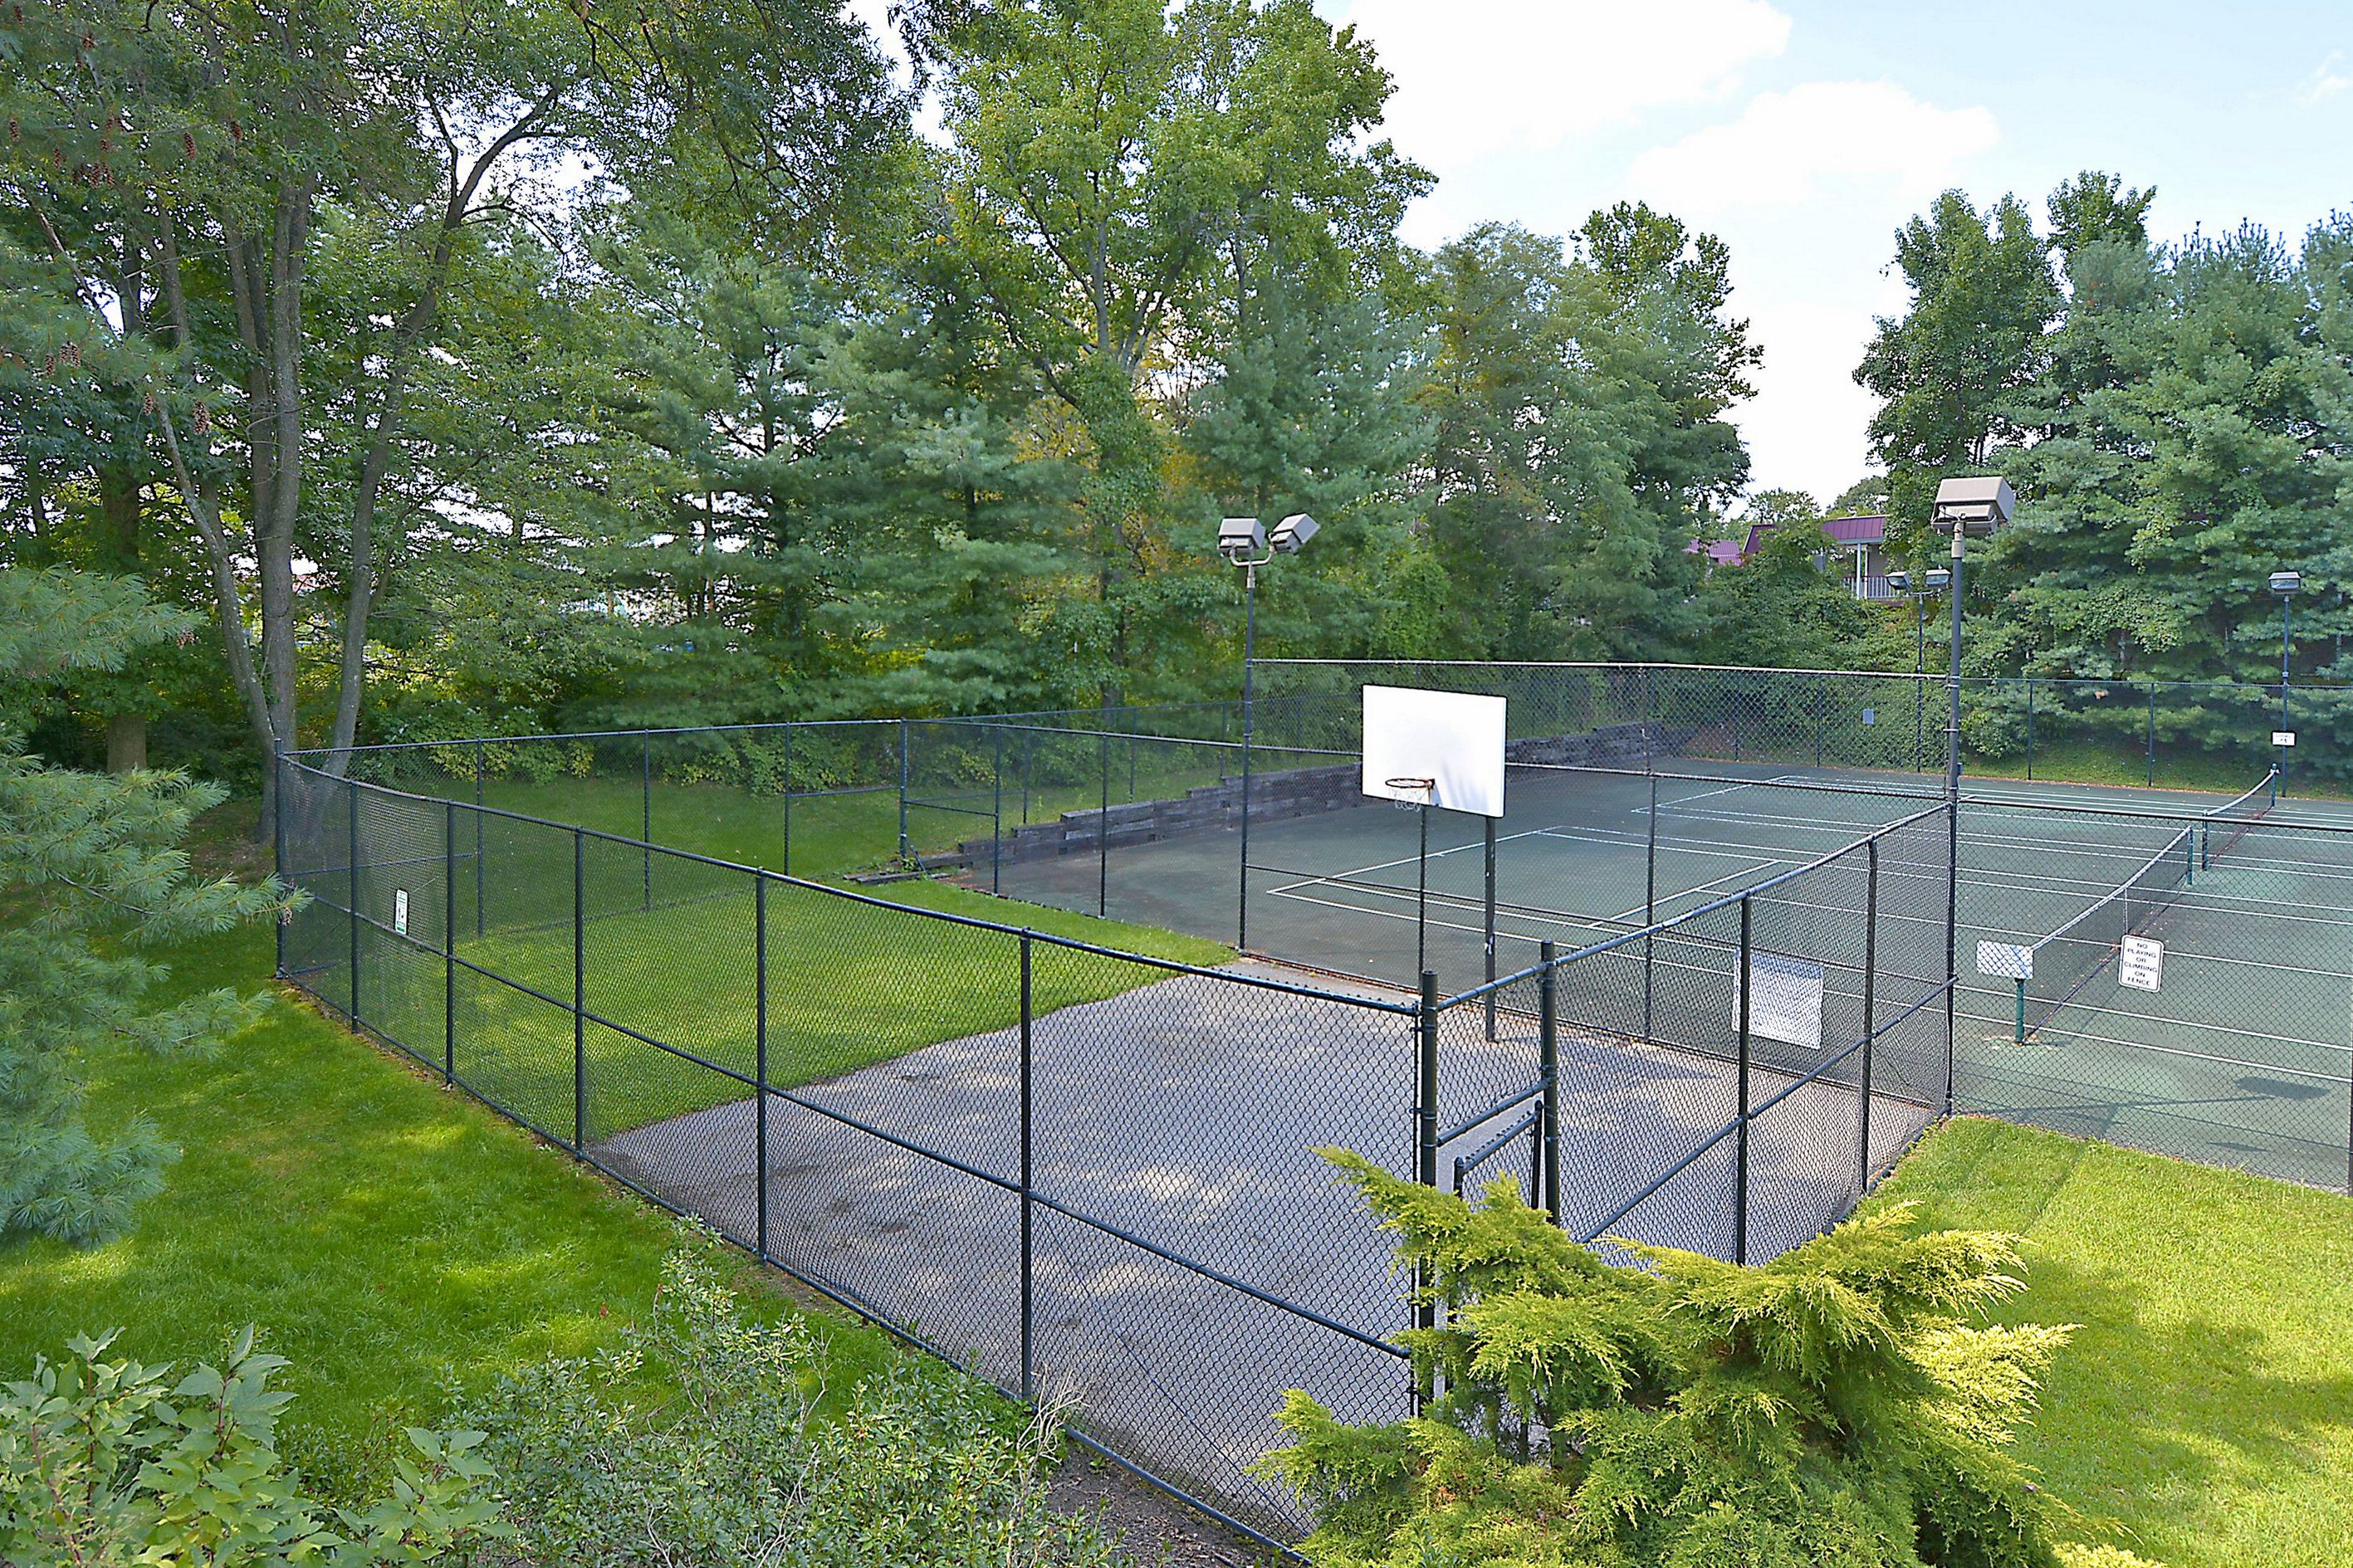 Seven oaks basketball courts